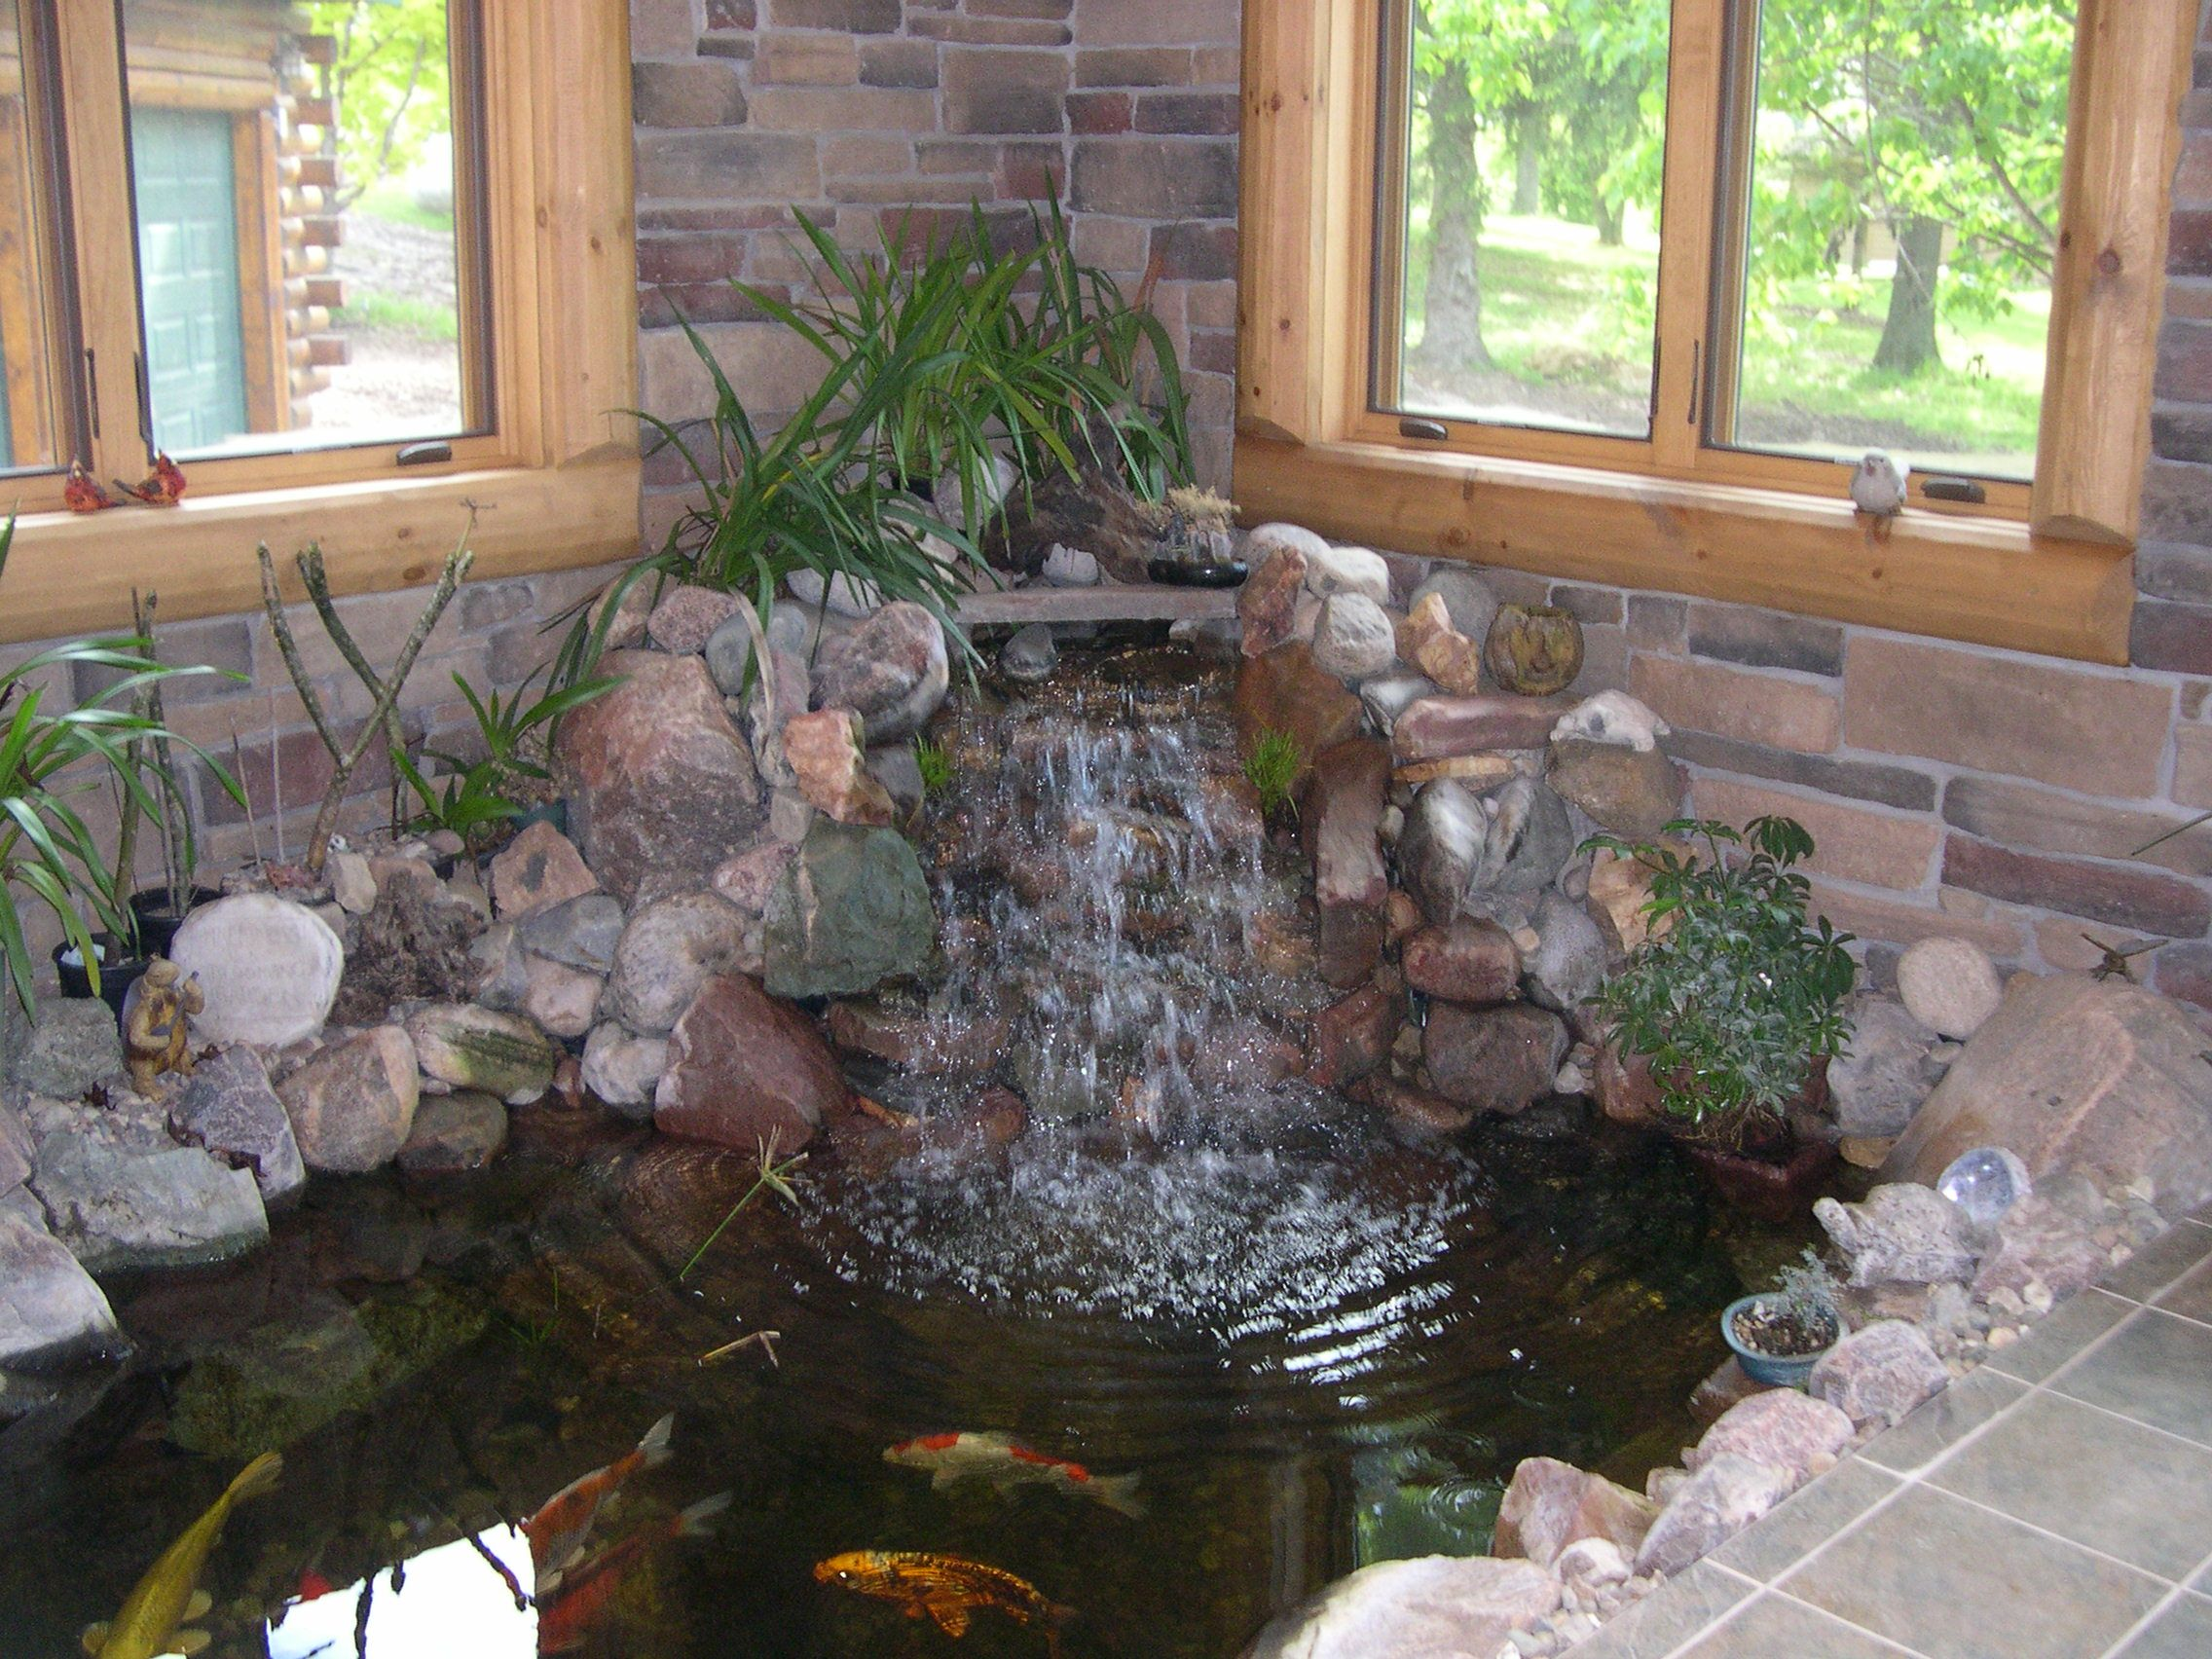 Decoration Beautiful Luxury Small Indoor Koi Pond Design Ideas Awesome Indoor Ponds For Komnatnoe Sadovodstvo Ozelenenie Pruda Idei Ustrojstva Zadnego Dvora